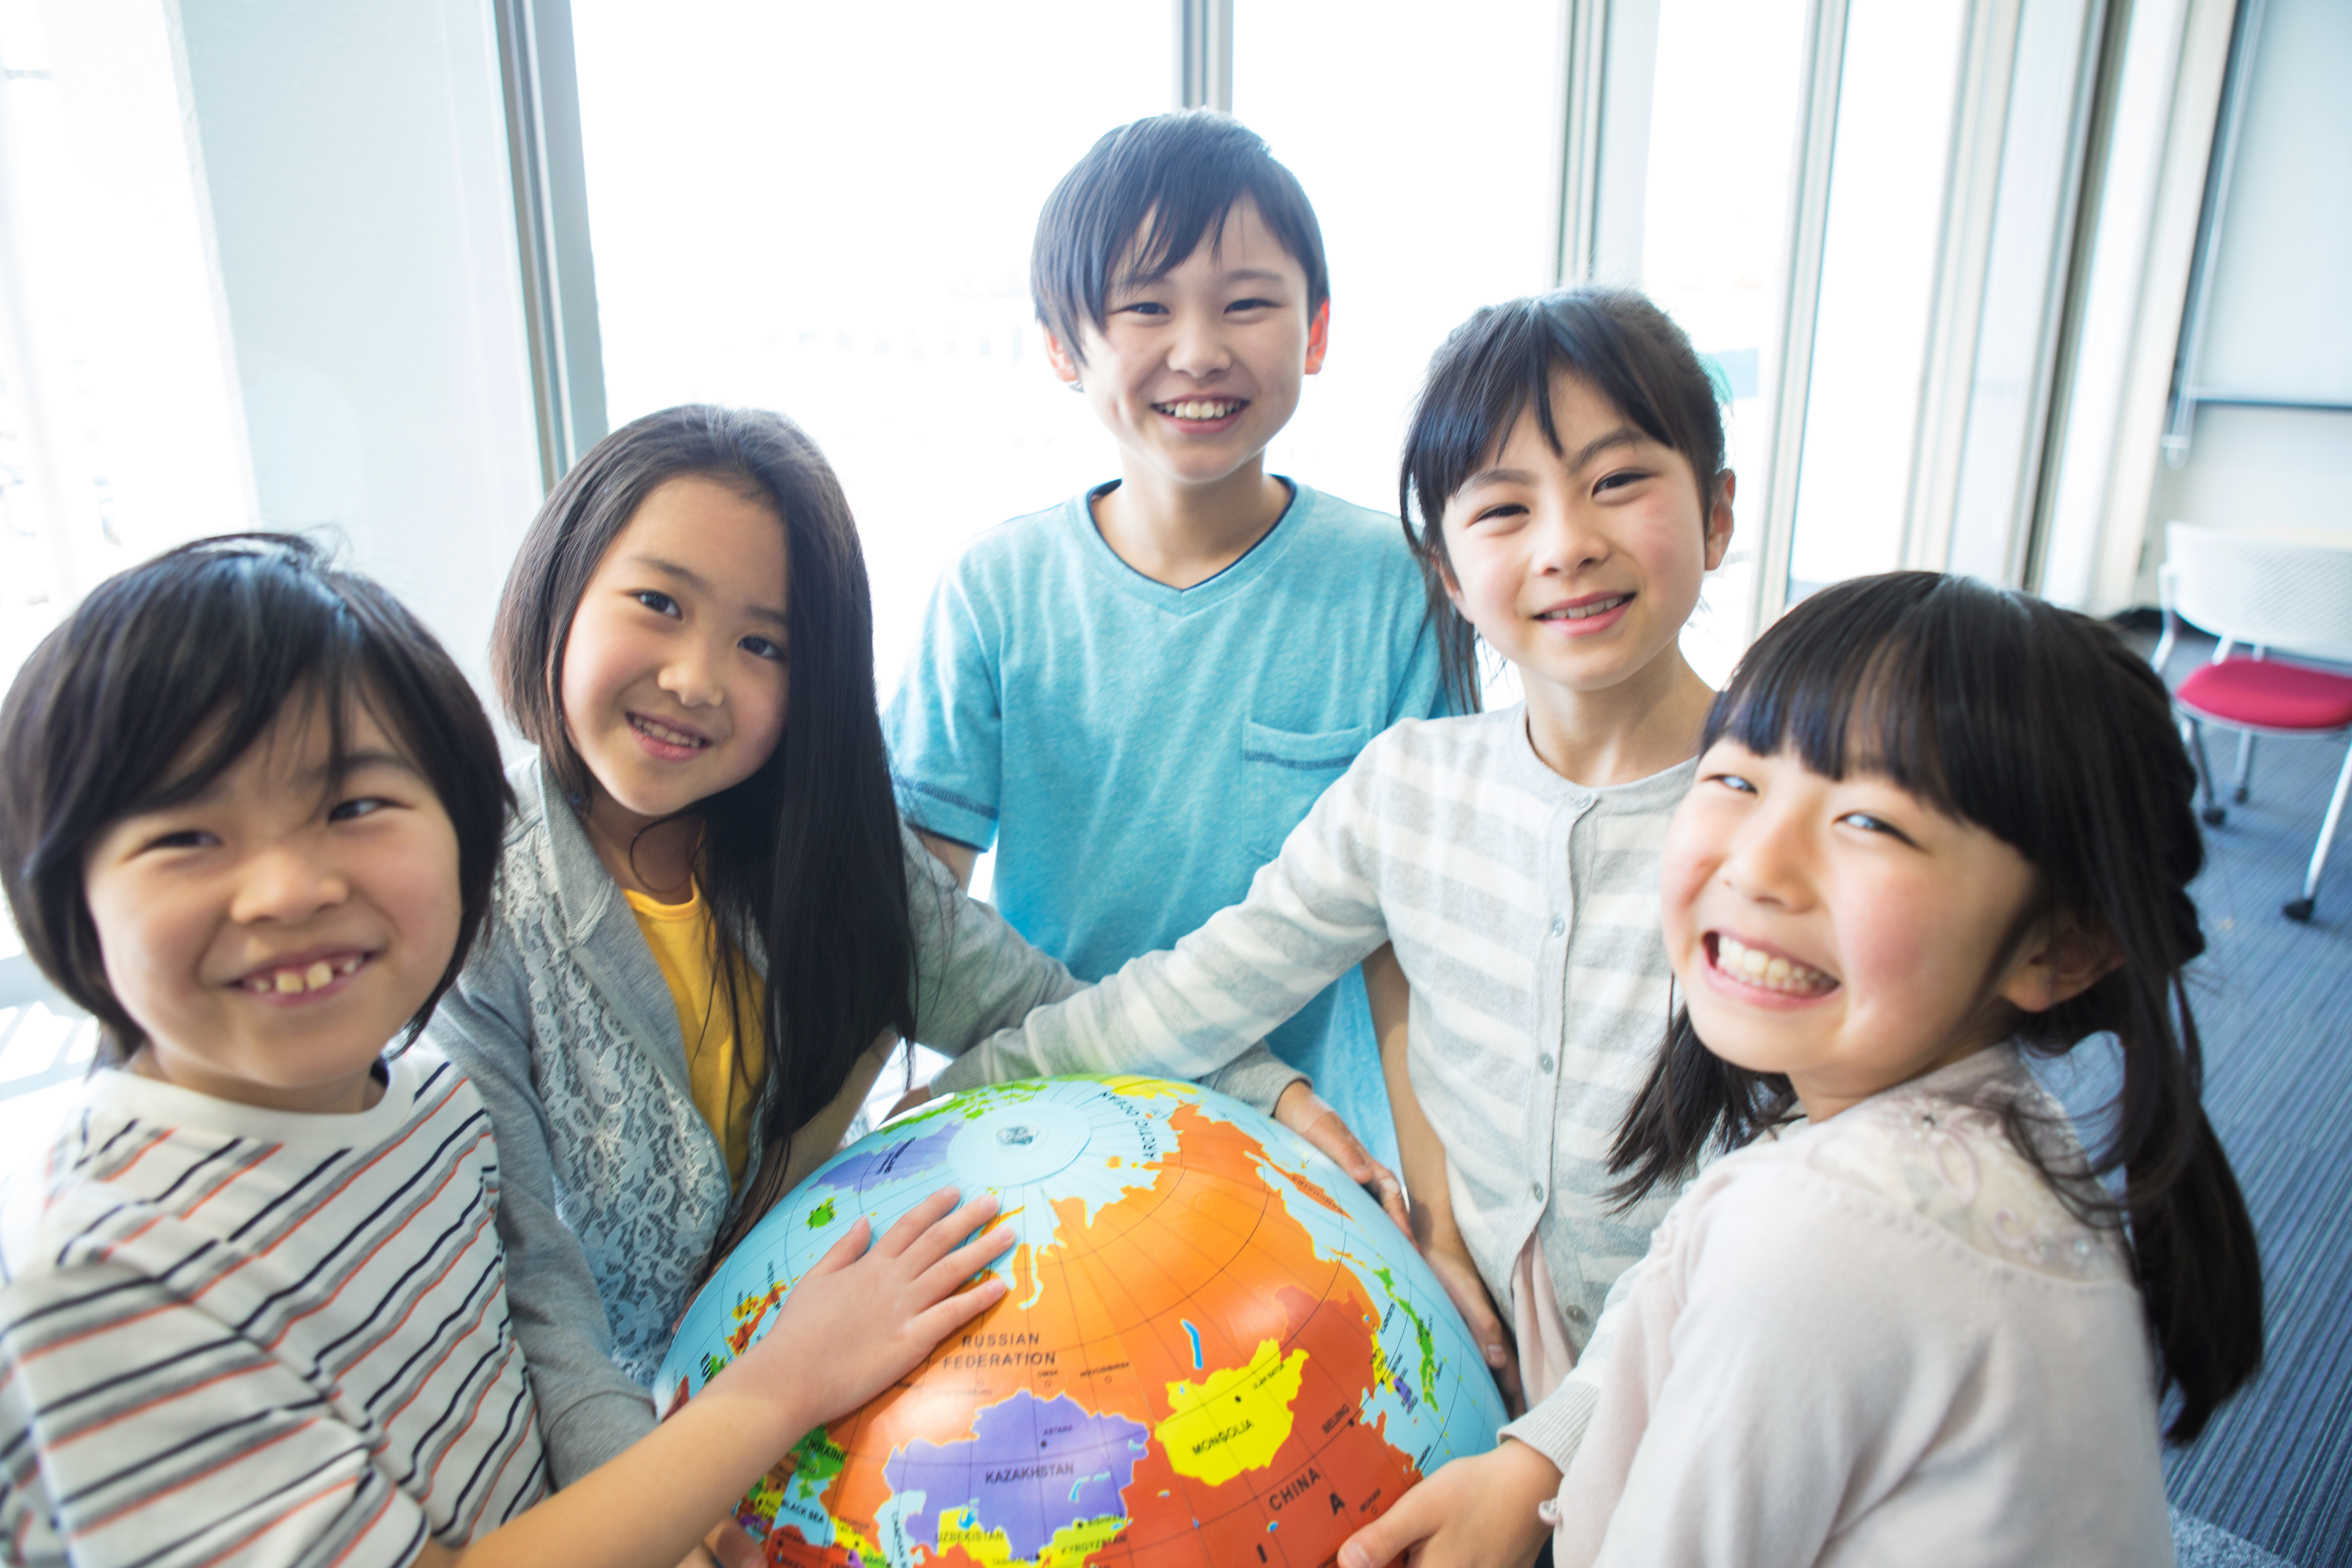 Where to? The 5 Best Countries for Teaching English Overseas